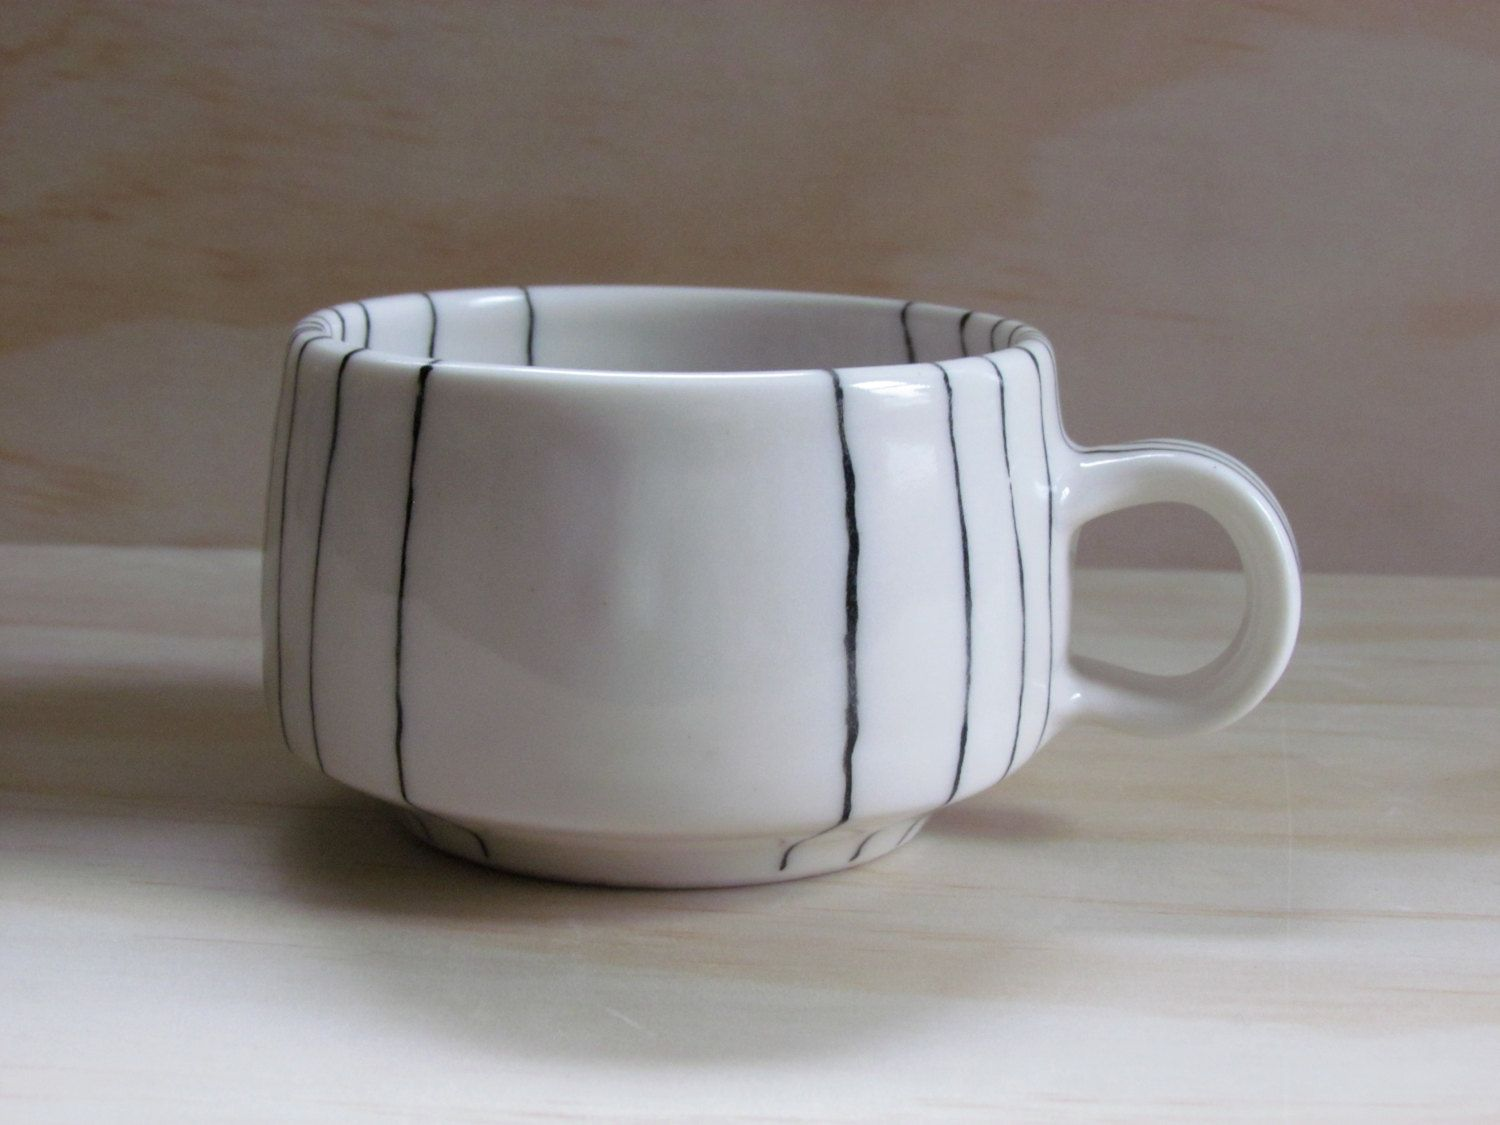 black and white line tea or coffee mug graphic design modern ceramicporcelain mug.  best mug images on pinterest  coffee mugs mugs and coffee cups